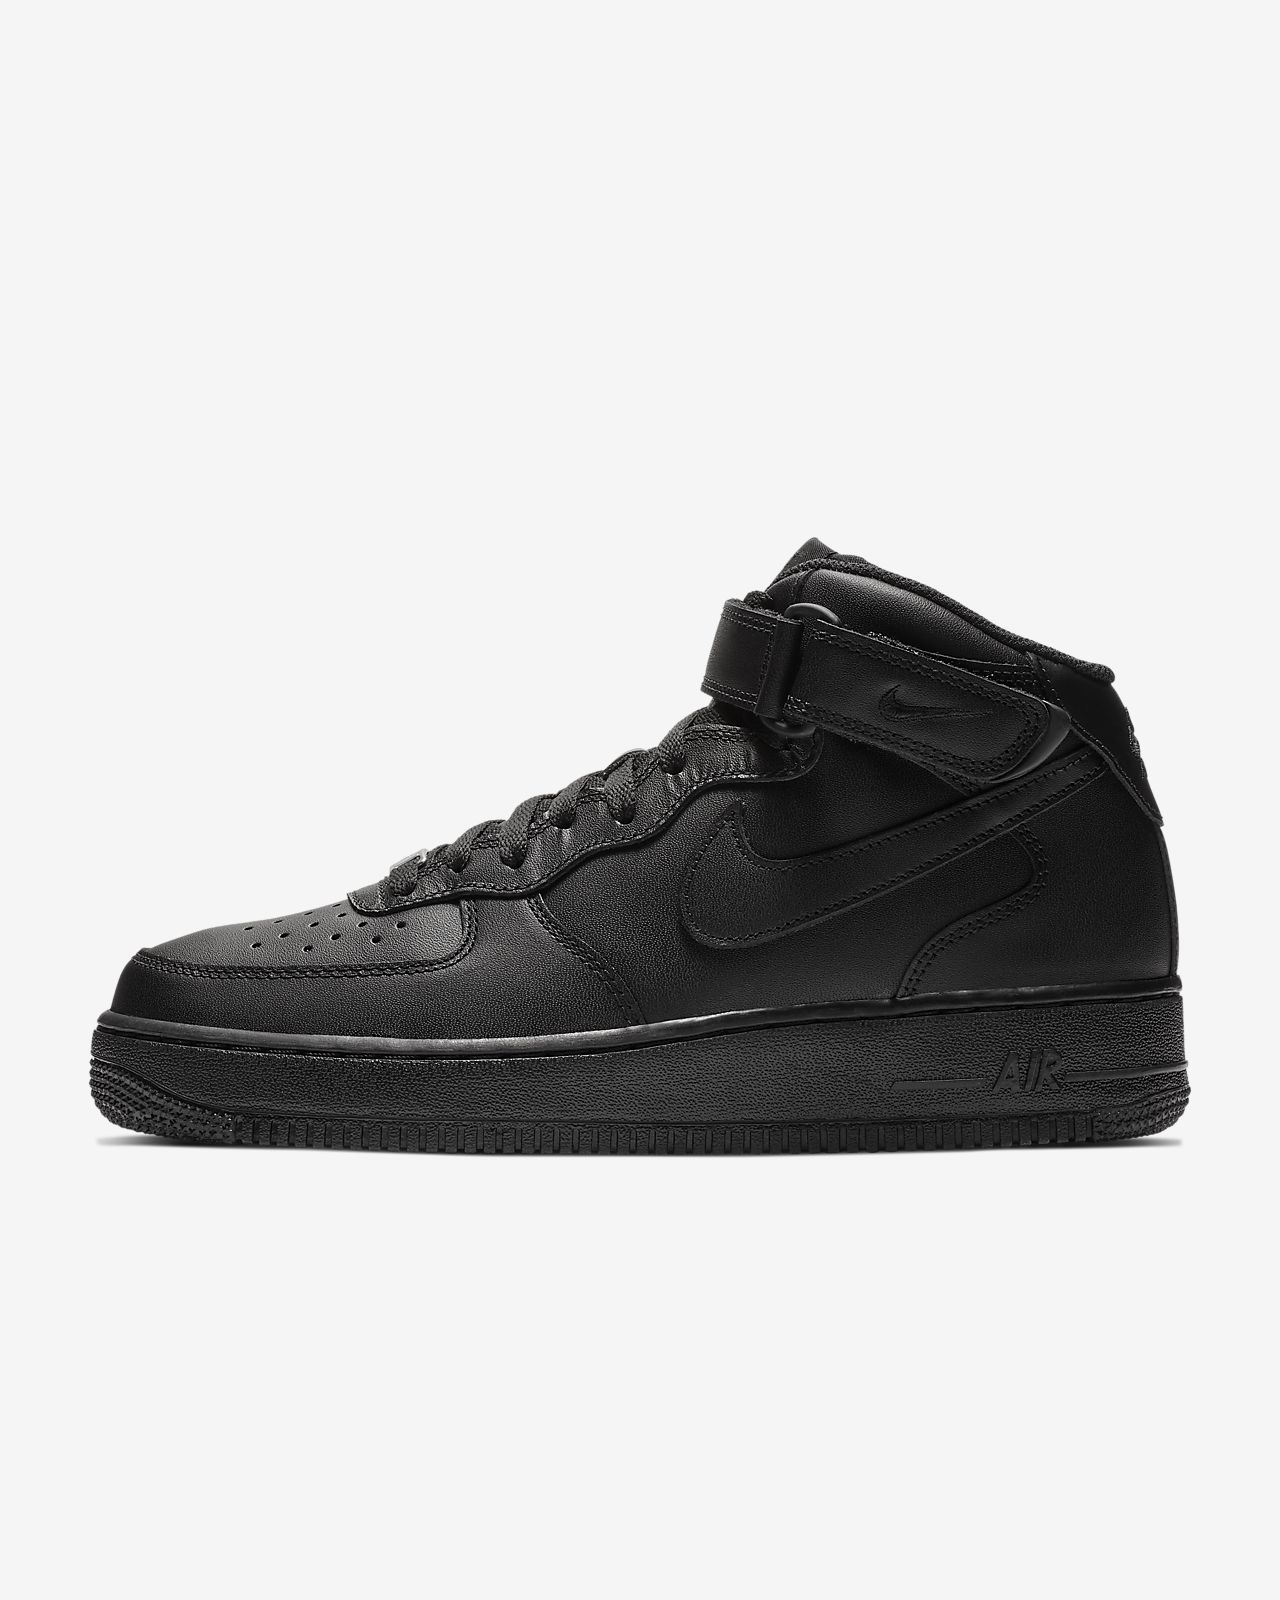 NIKE AIR FORCE 1 MID '07 Nike air force 1 mid '07 DARK GREYDARK GREYWHITE 315,123 048